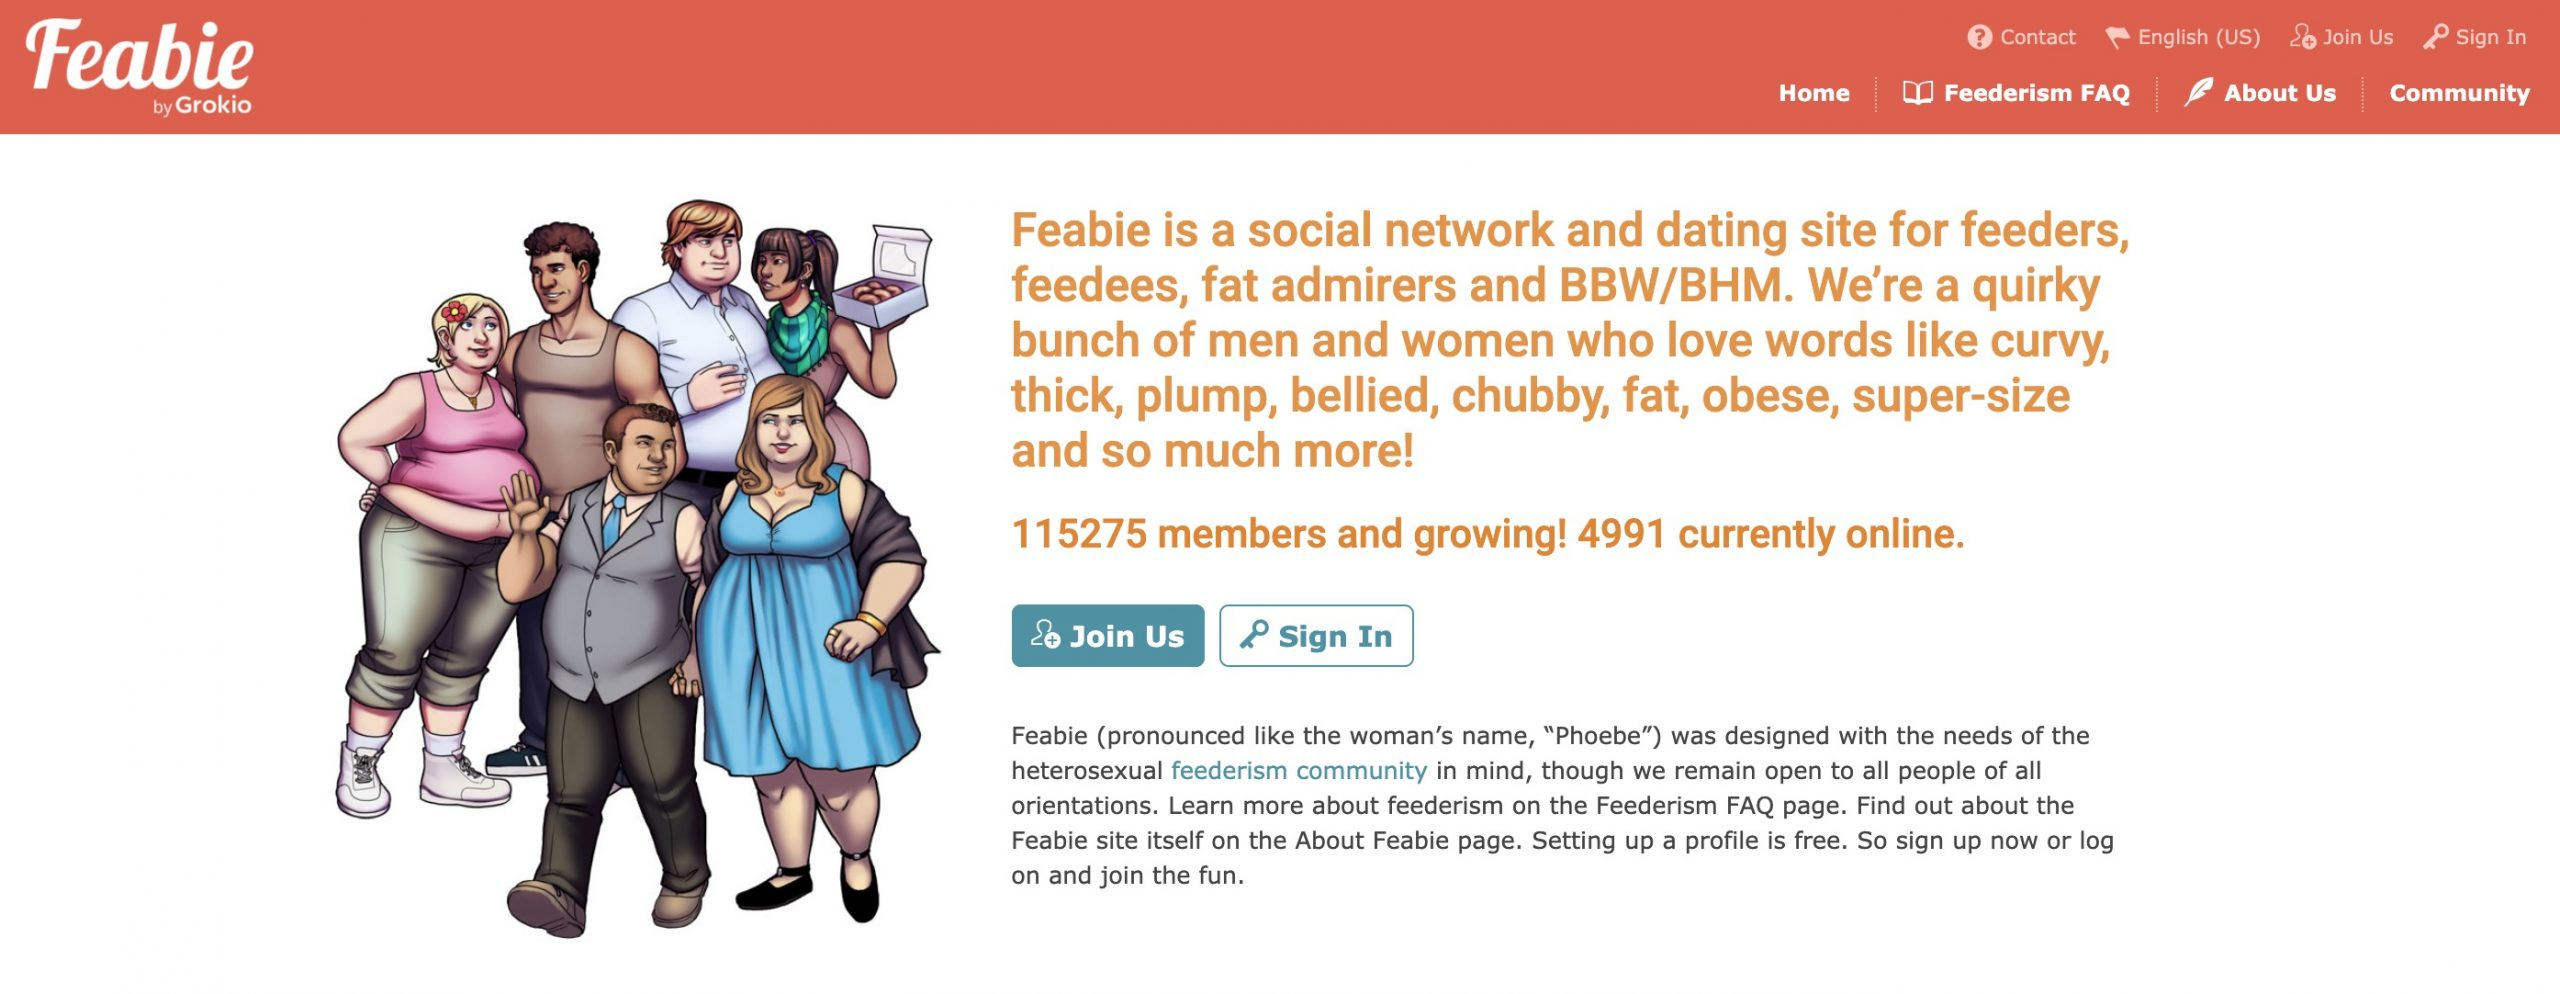 Feabie main page